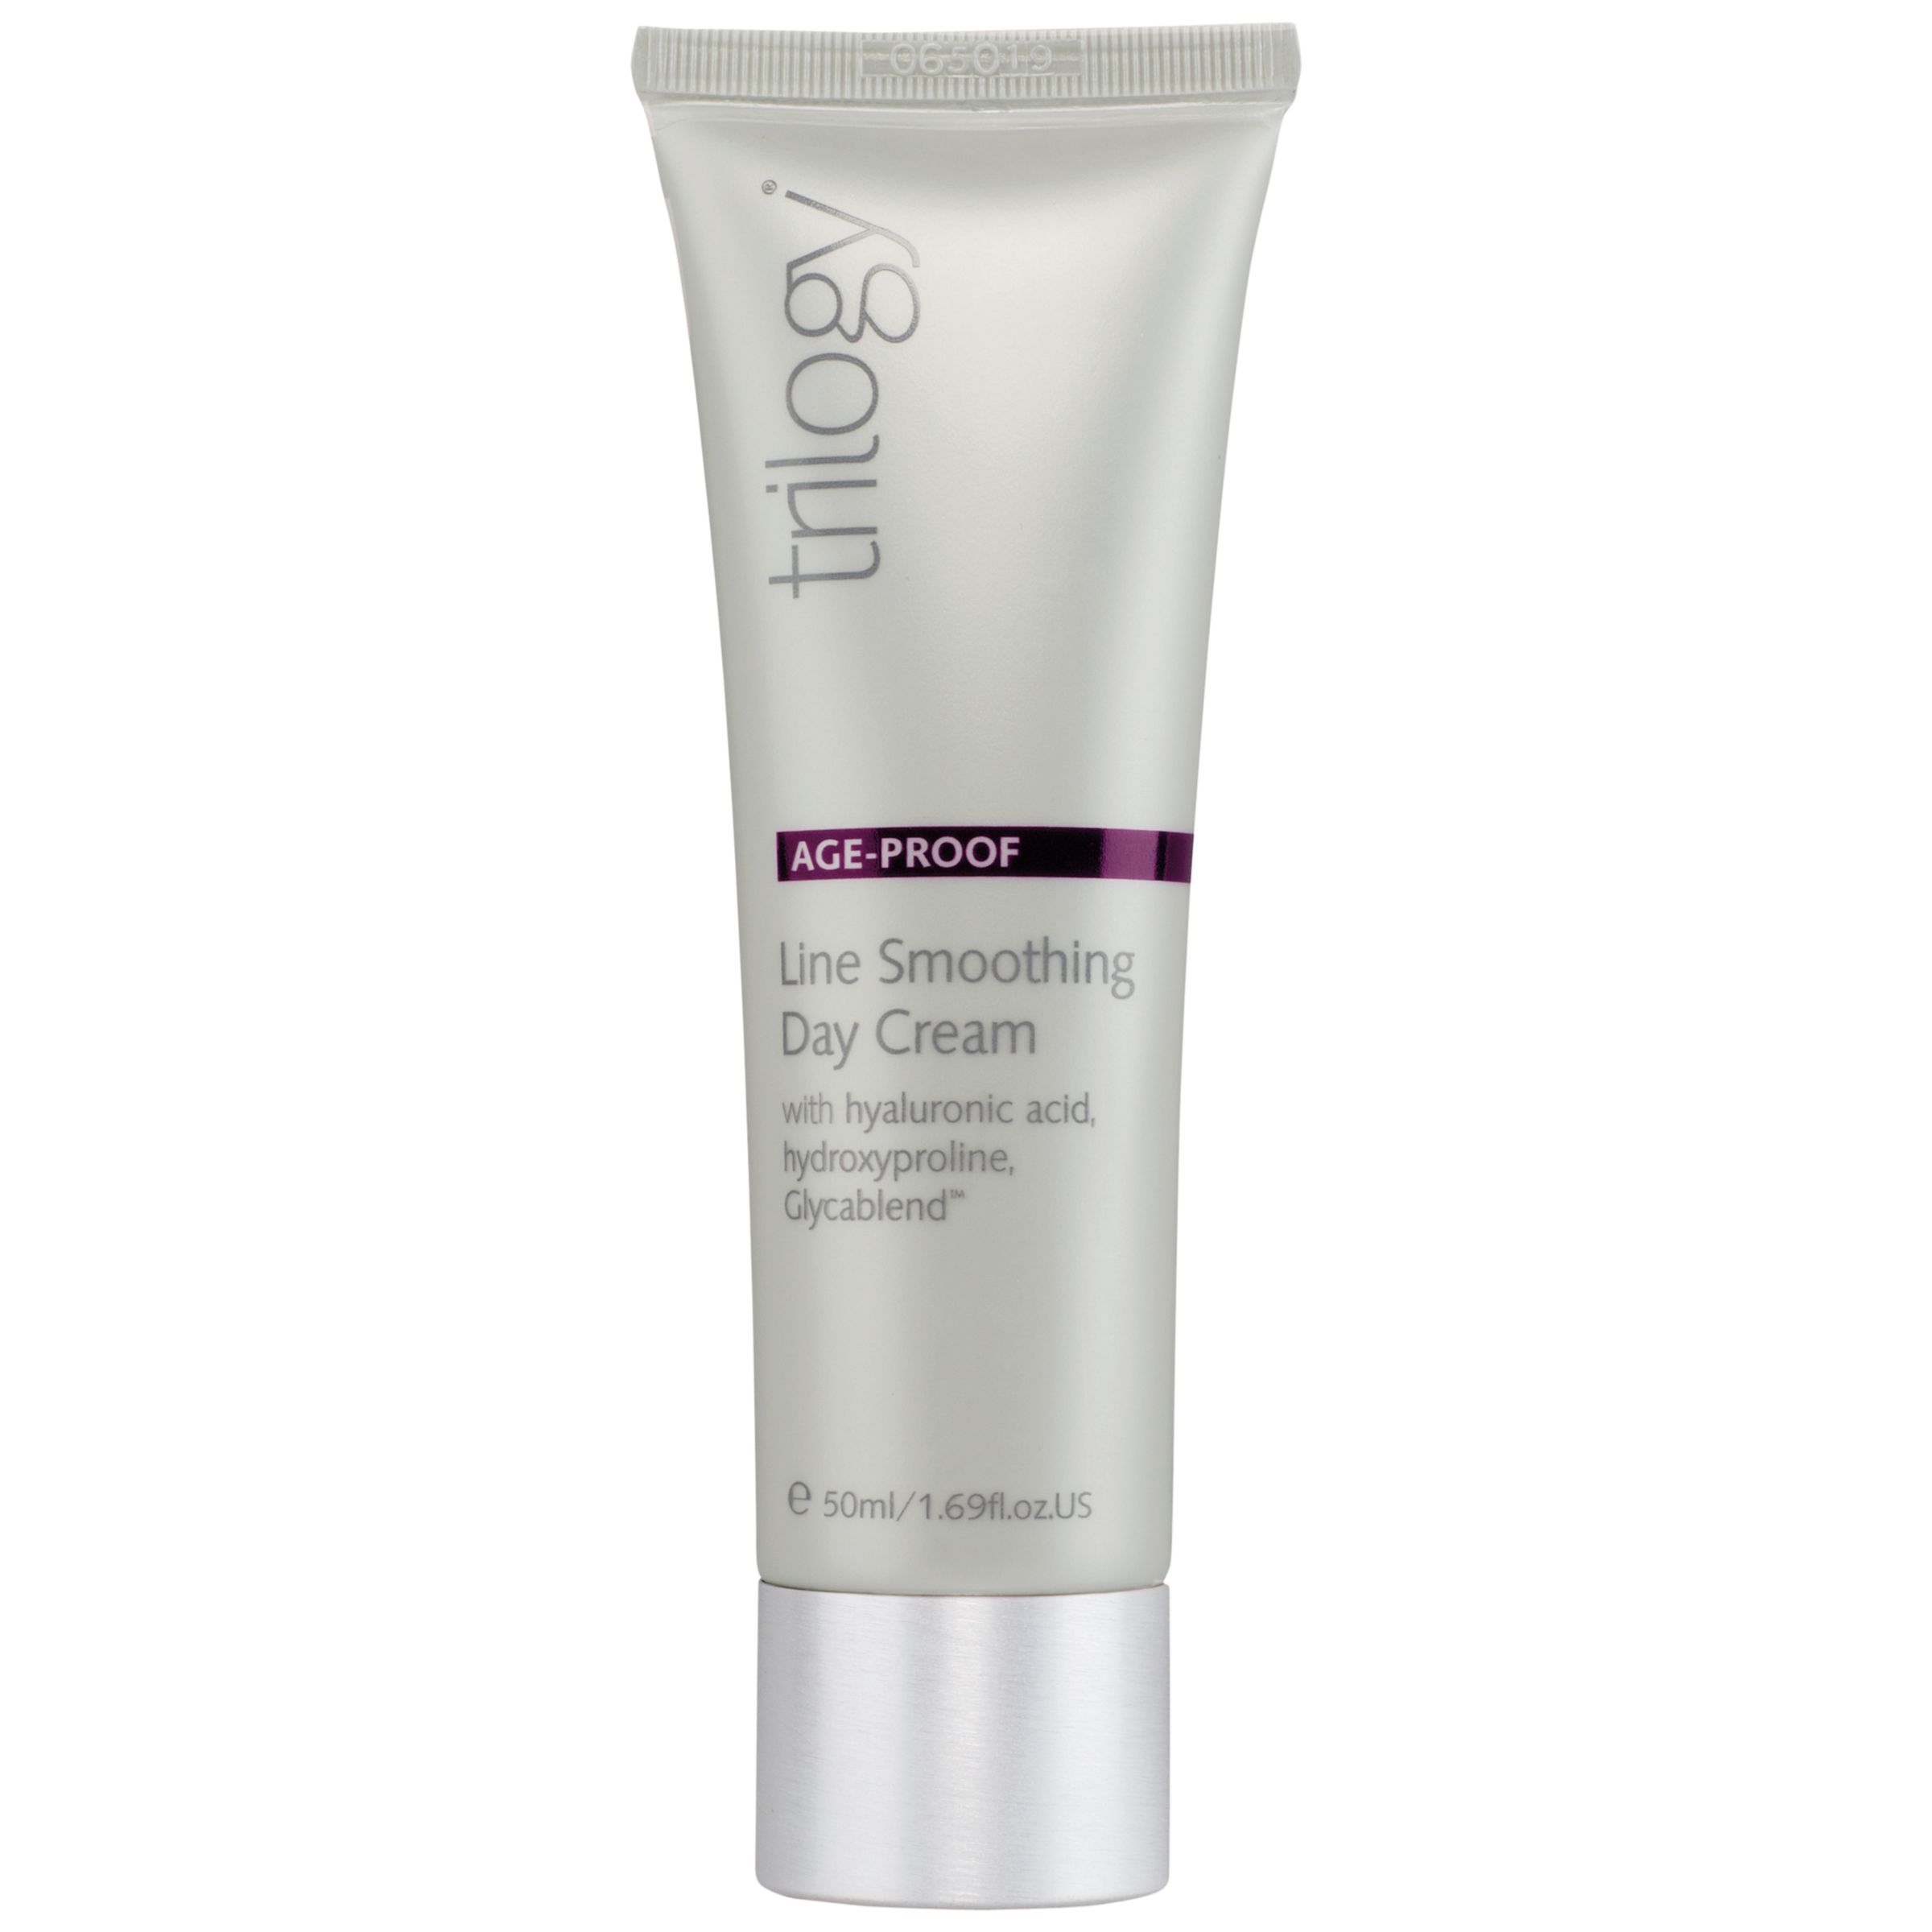 Trilogy Trilogy Line Smoothing Day Cream, 50ml